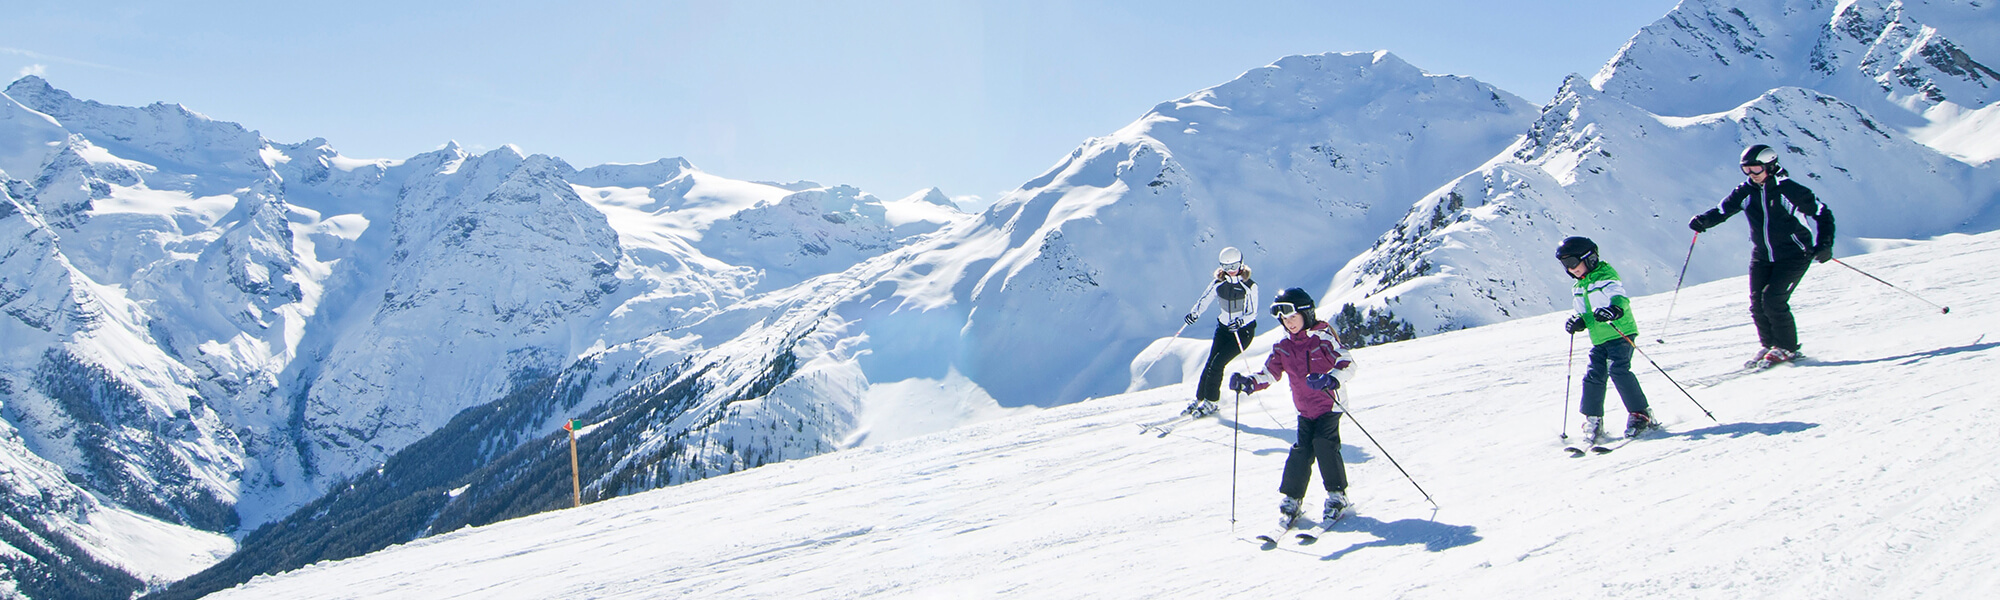 Hotel Elisabeth - Skiing on the Plan de Corones